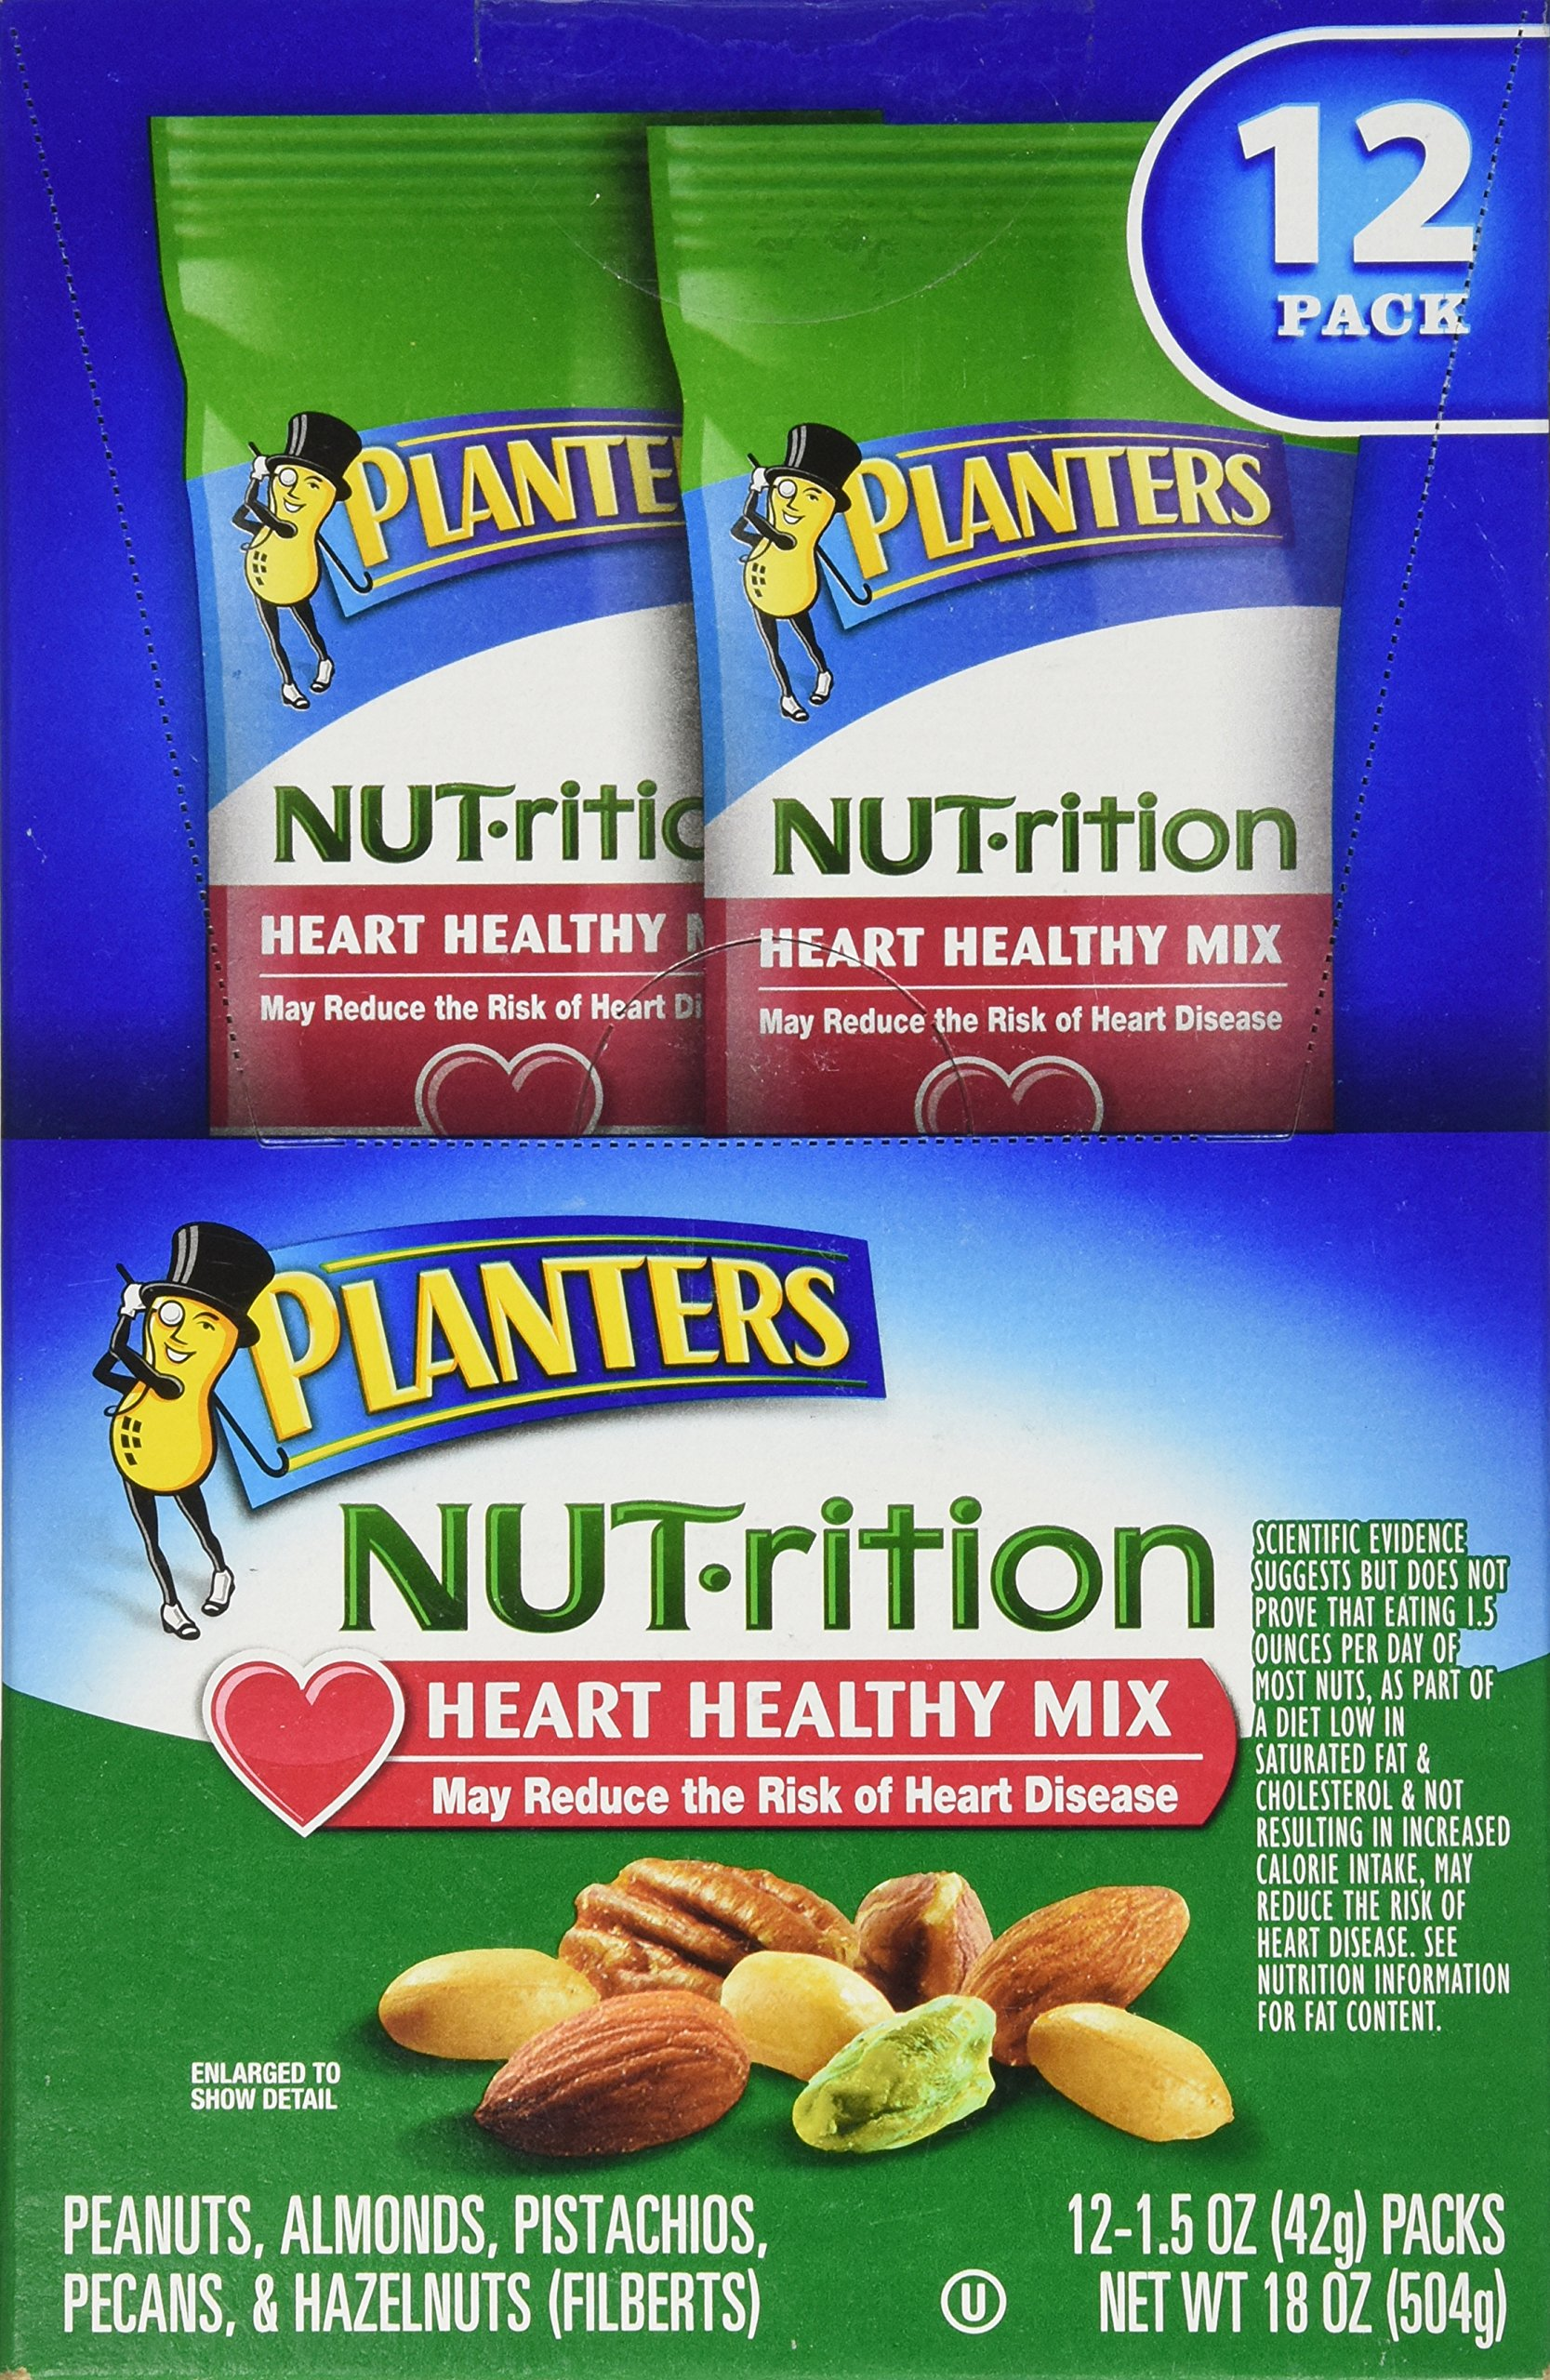 SCS Planters NUT-rition Heart Healthy Mix - 1.5 oz. bags - 12 ct. by Planters